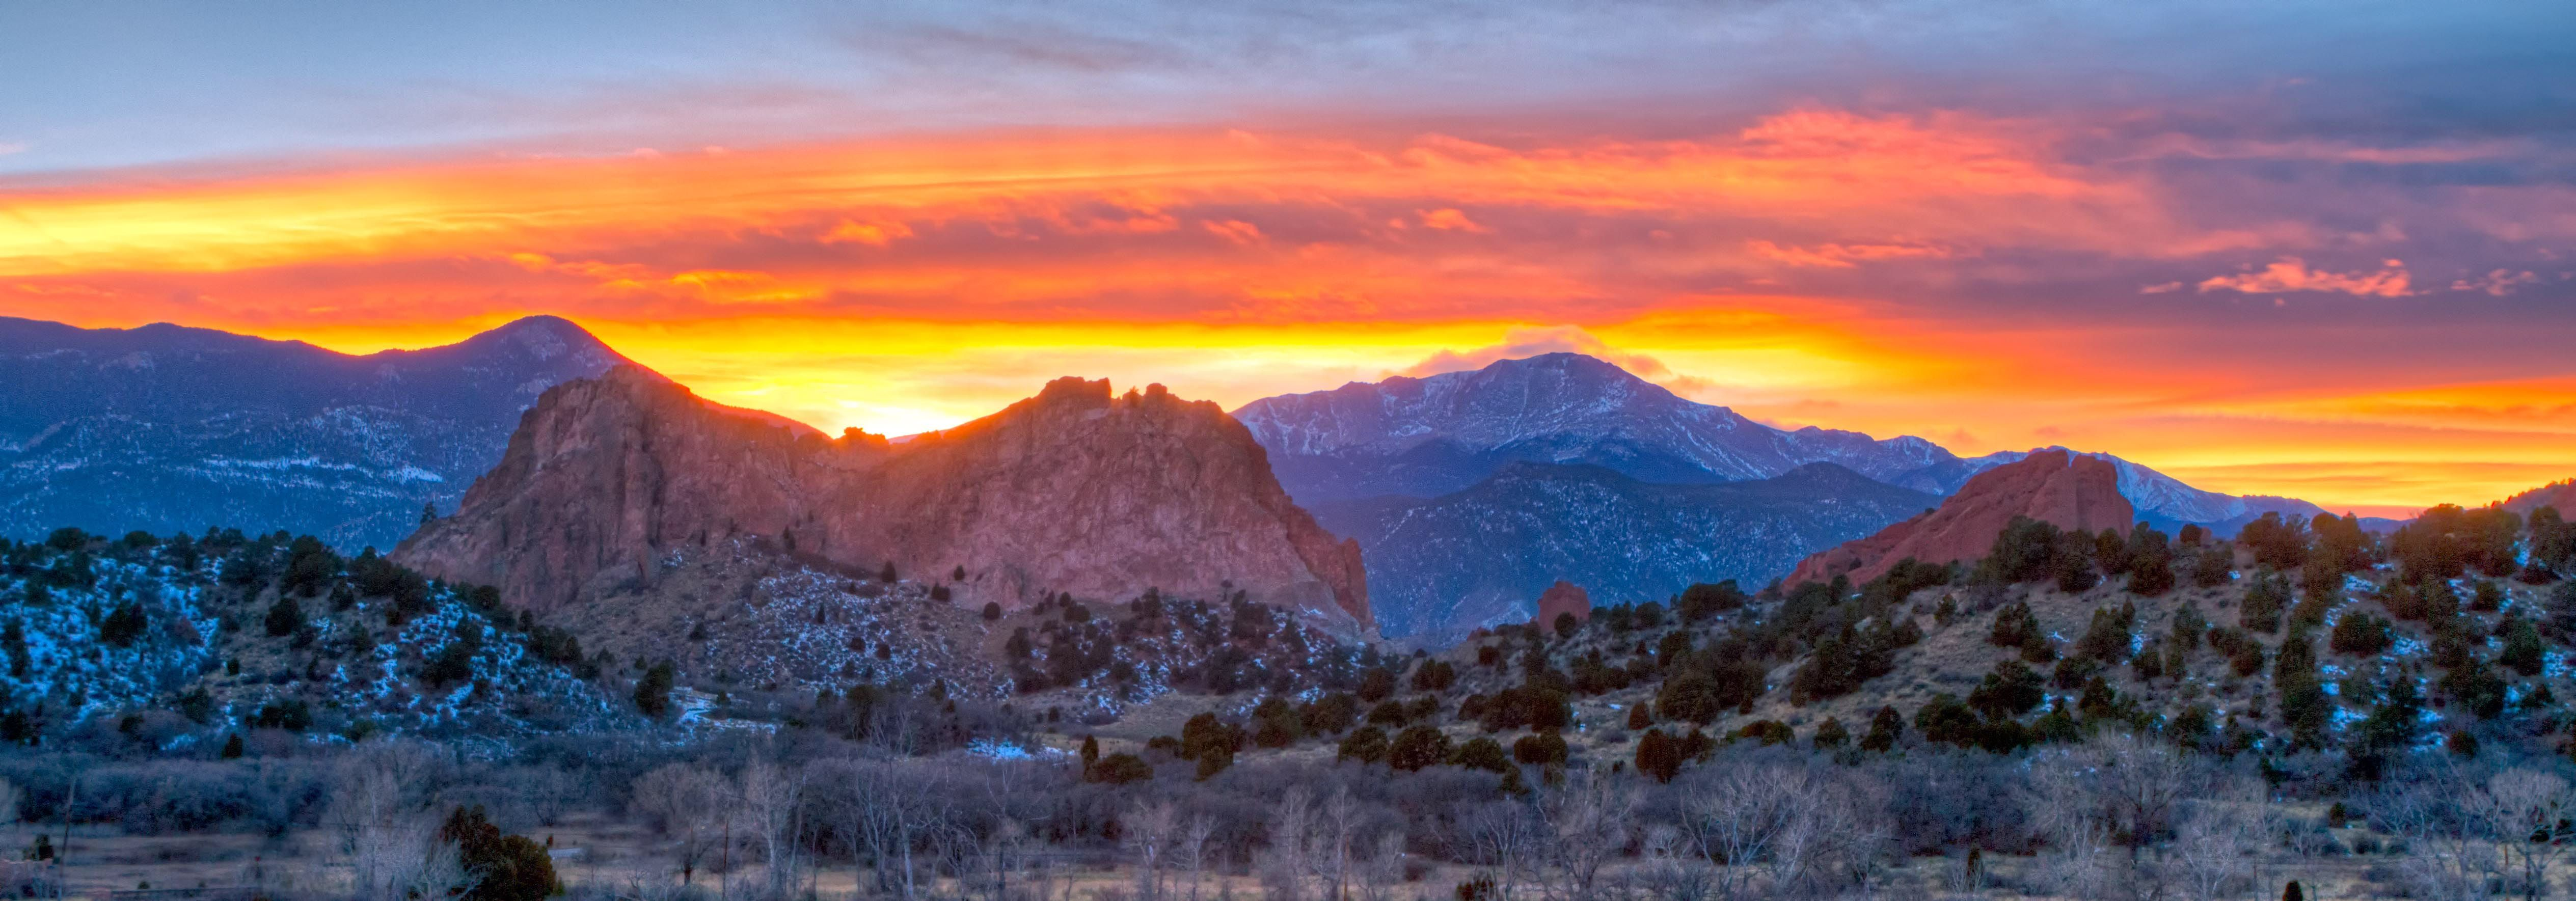 Sunset at Garden of the Gods with Pikes Peak in the